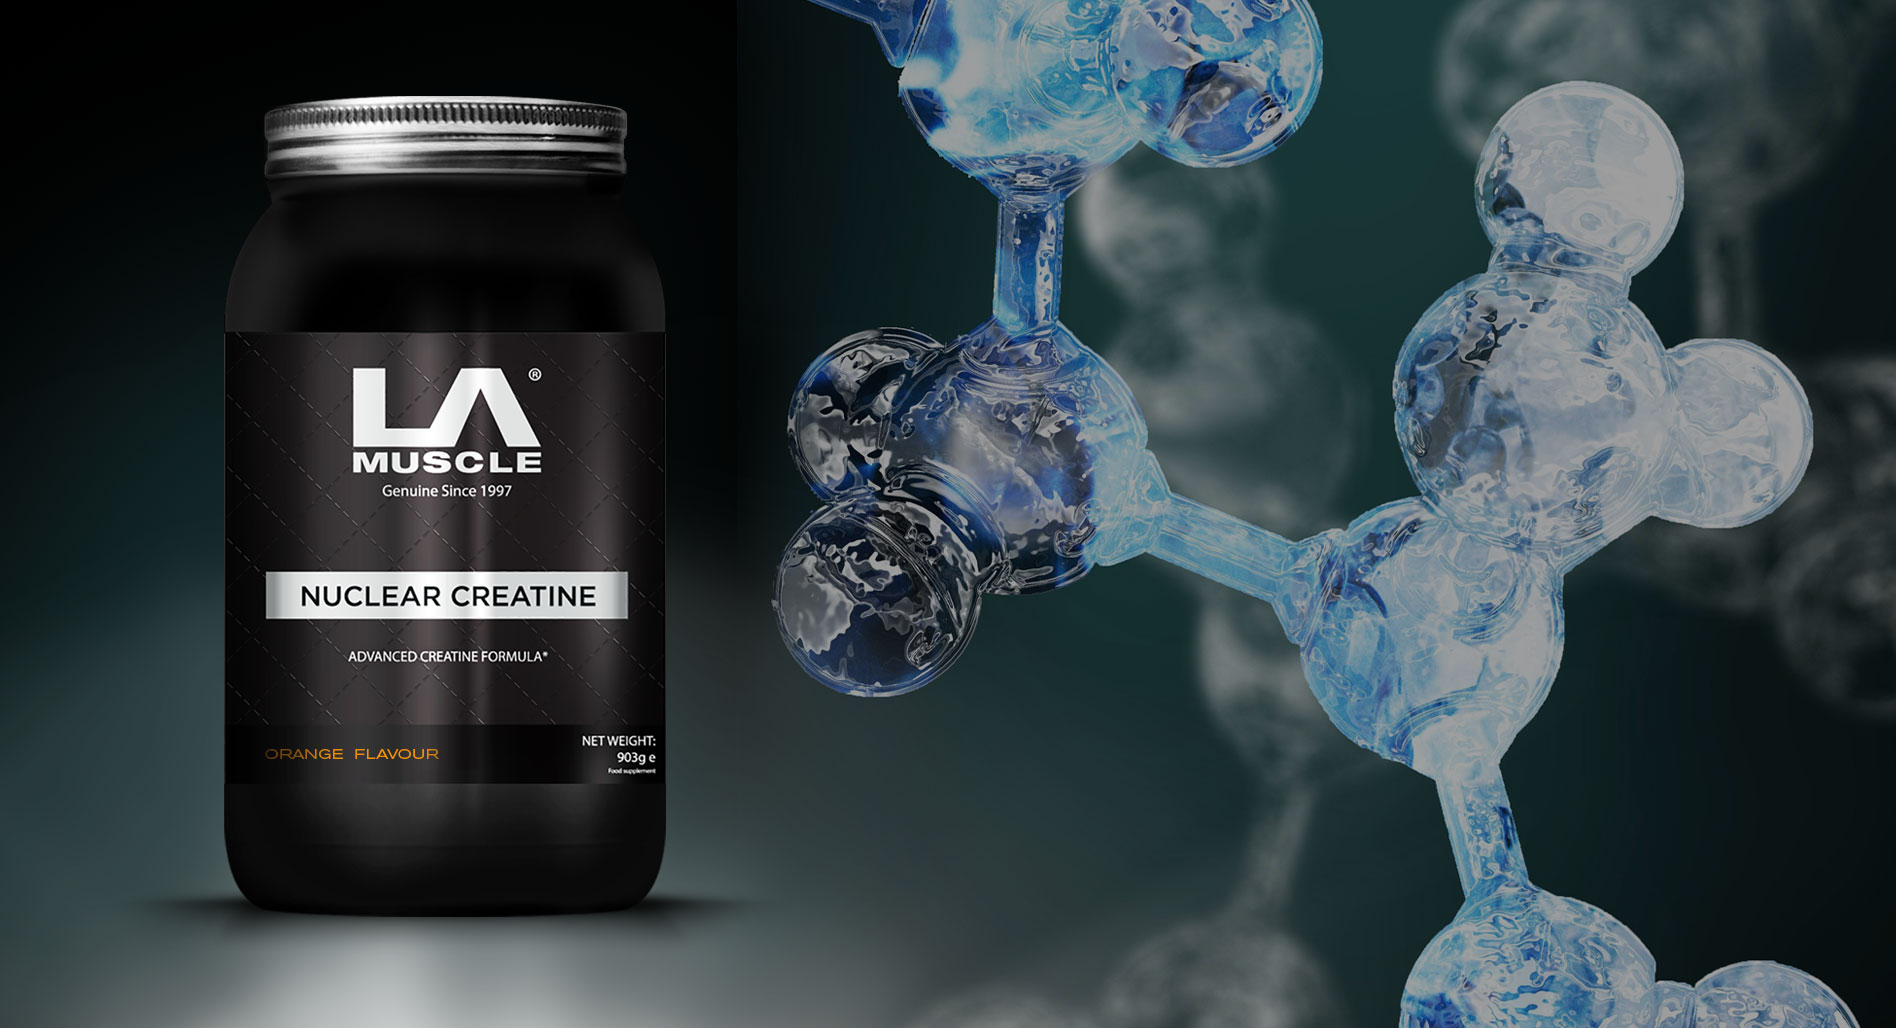 Nuclear Creatine: Inside The Formula